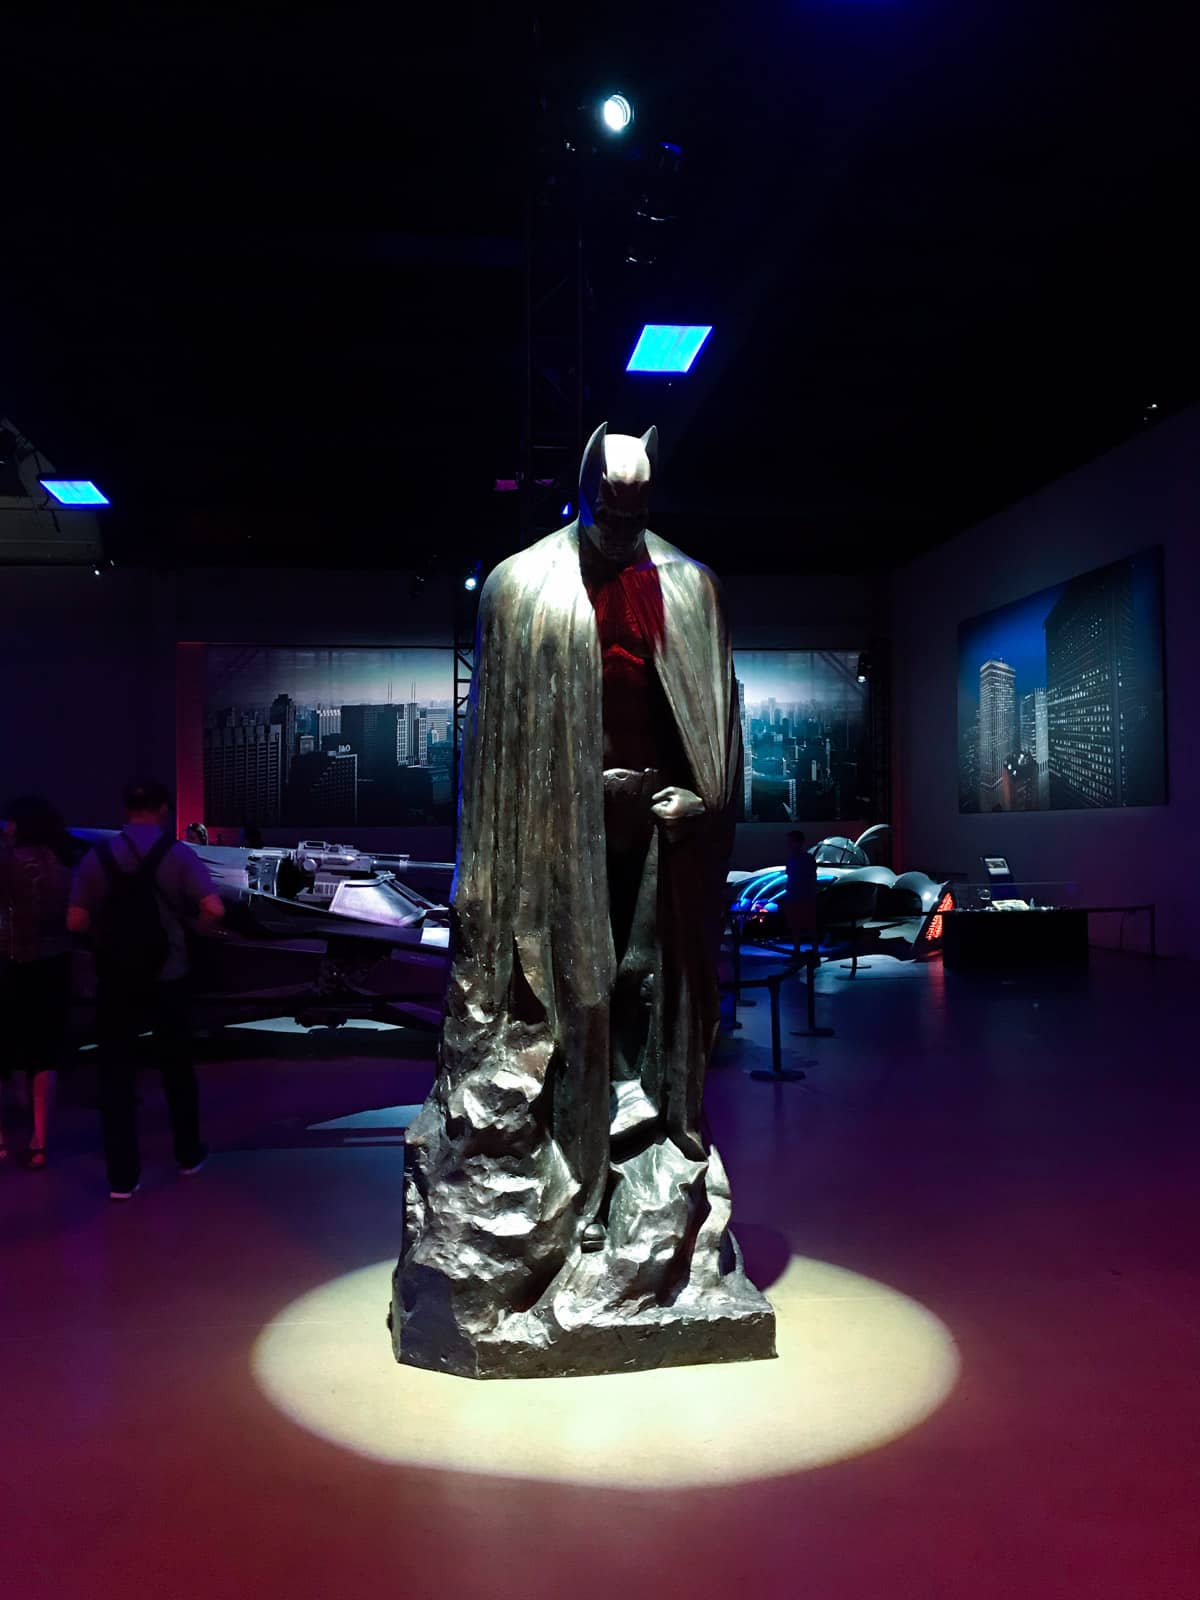 A dark room with a statue of the Batman character, with a spotlight light from above. Batman is looking down towards the ground. In the background are some automobiles